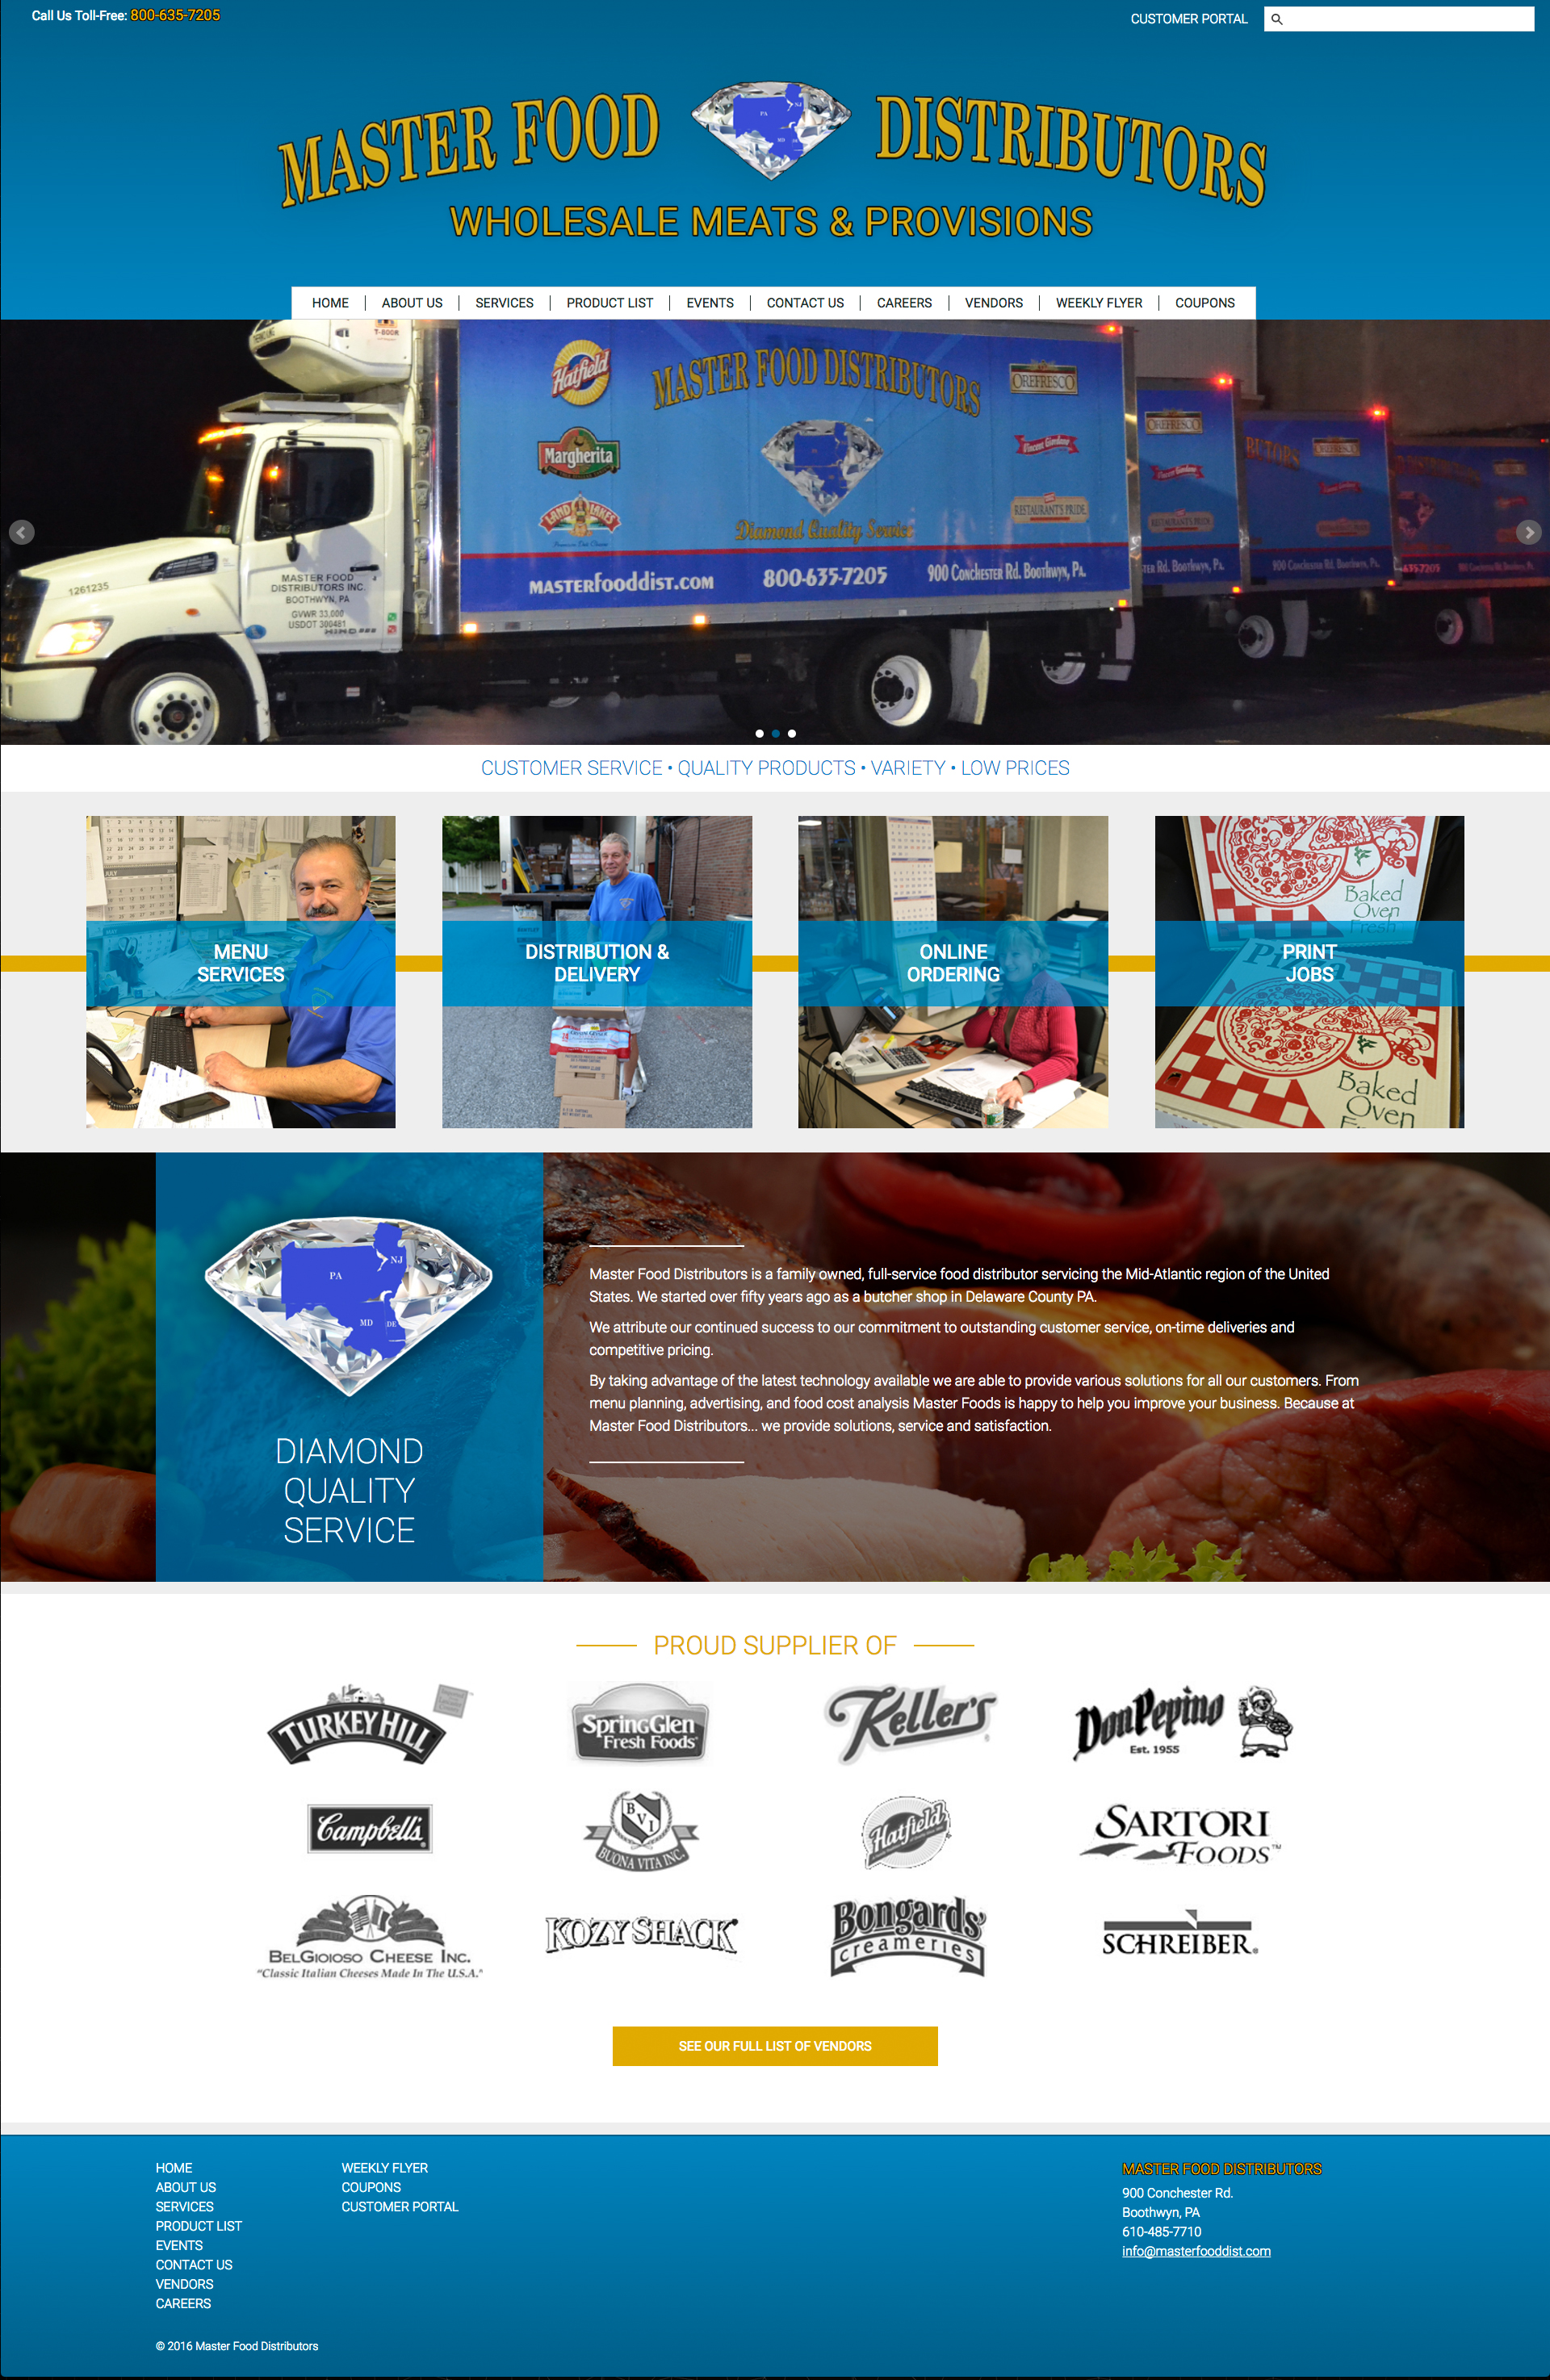 Responsive desktop services page for the Masterfood website